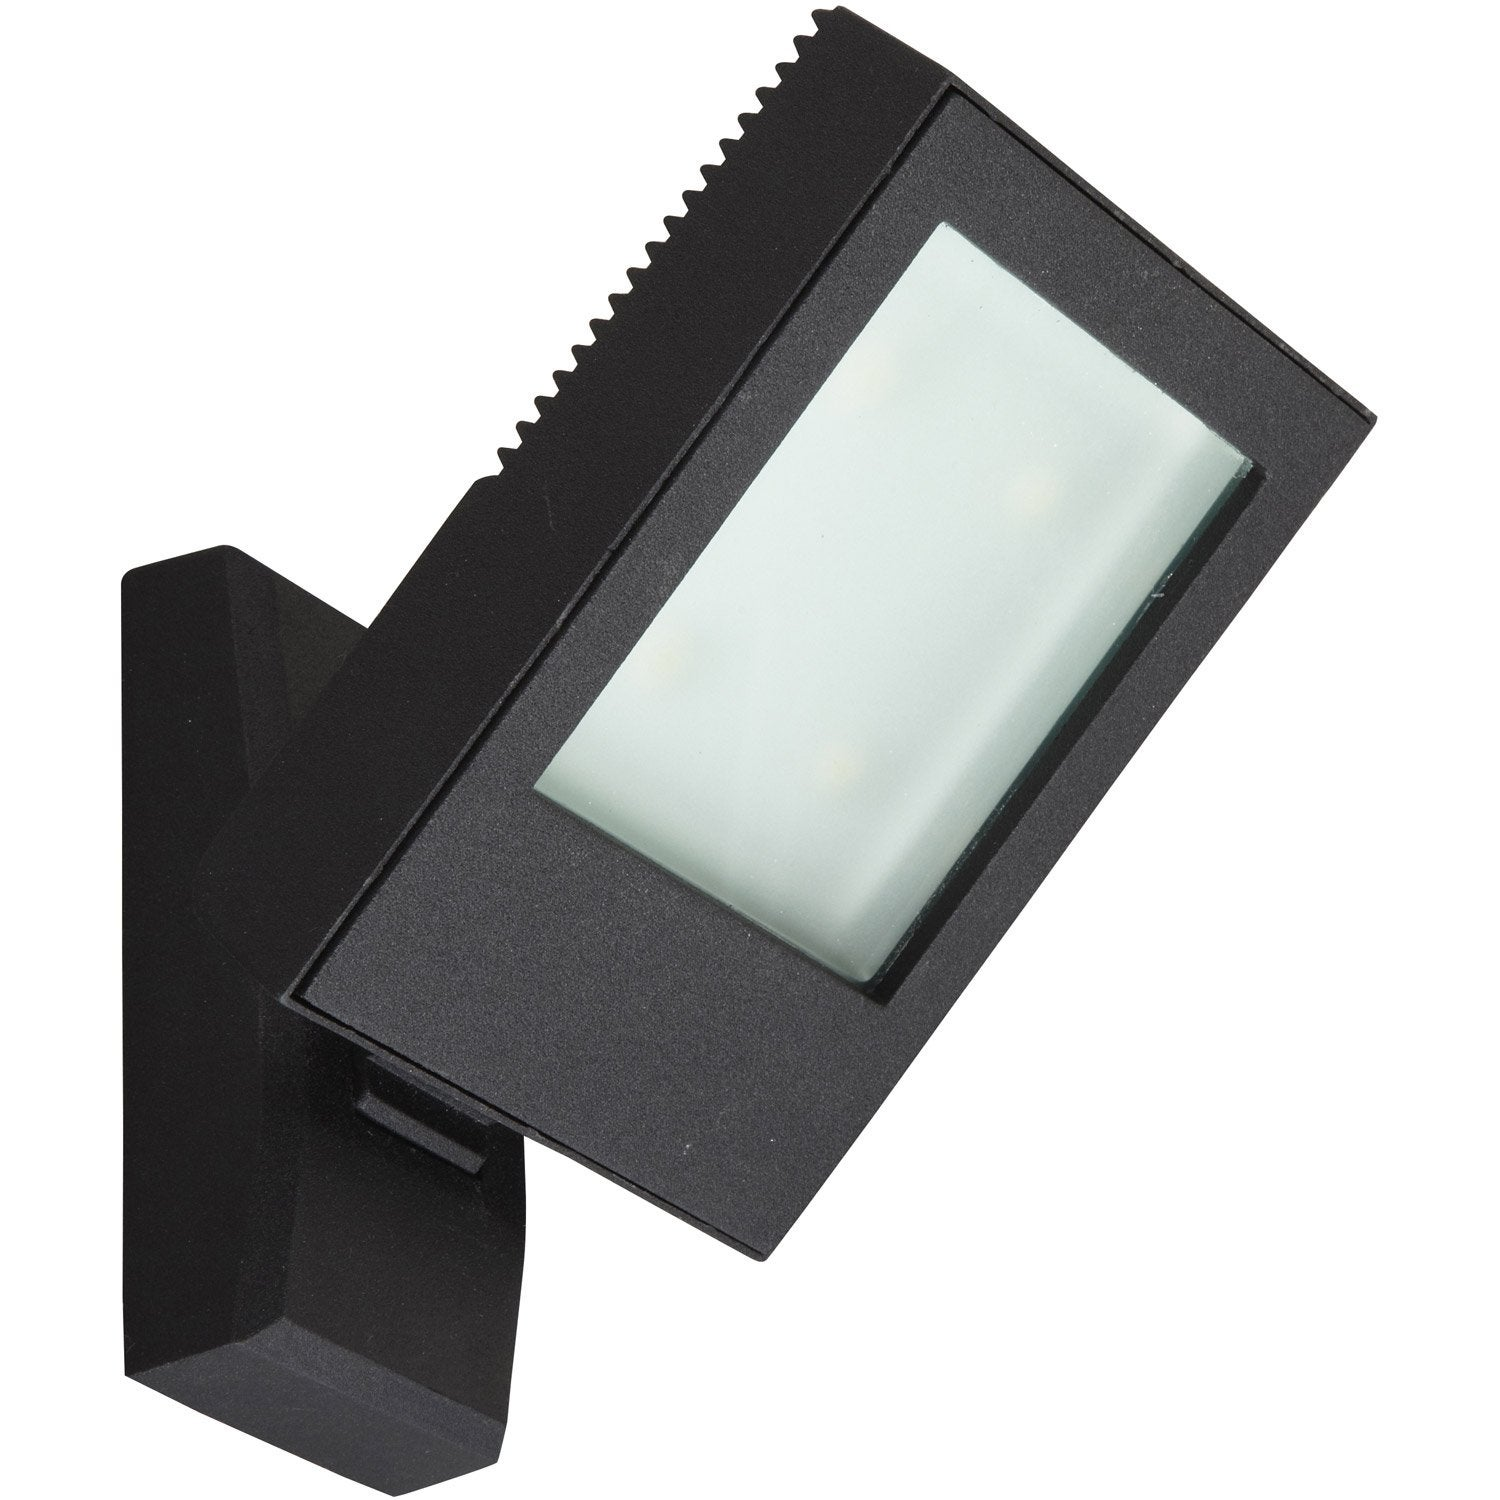 Applique montante ext rieure jade led int gr e noir for Applique murale exterieur led leroy merlin